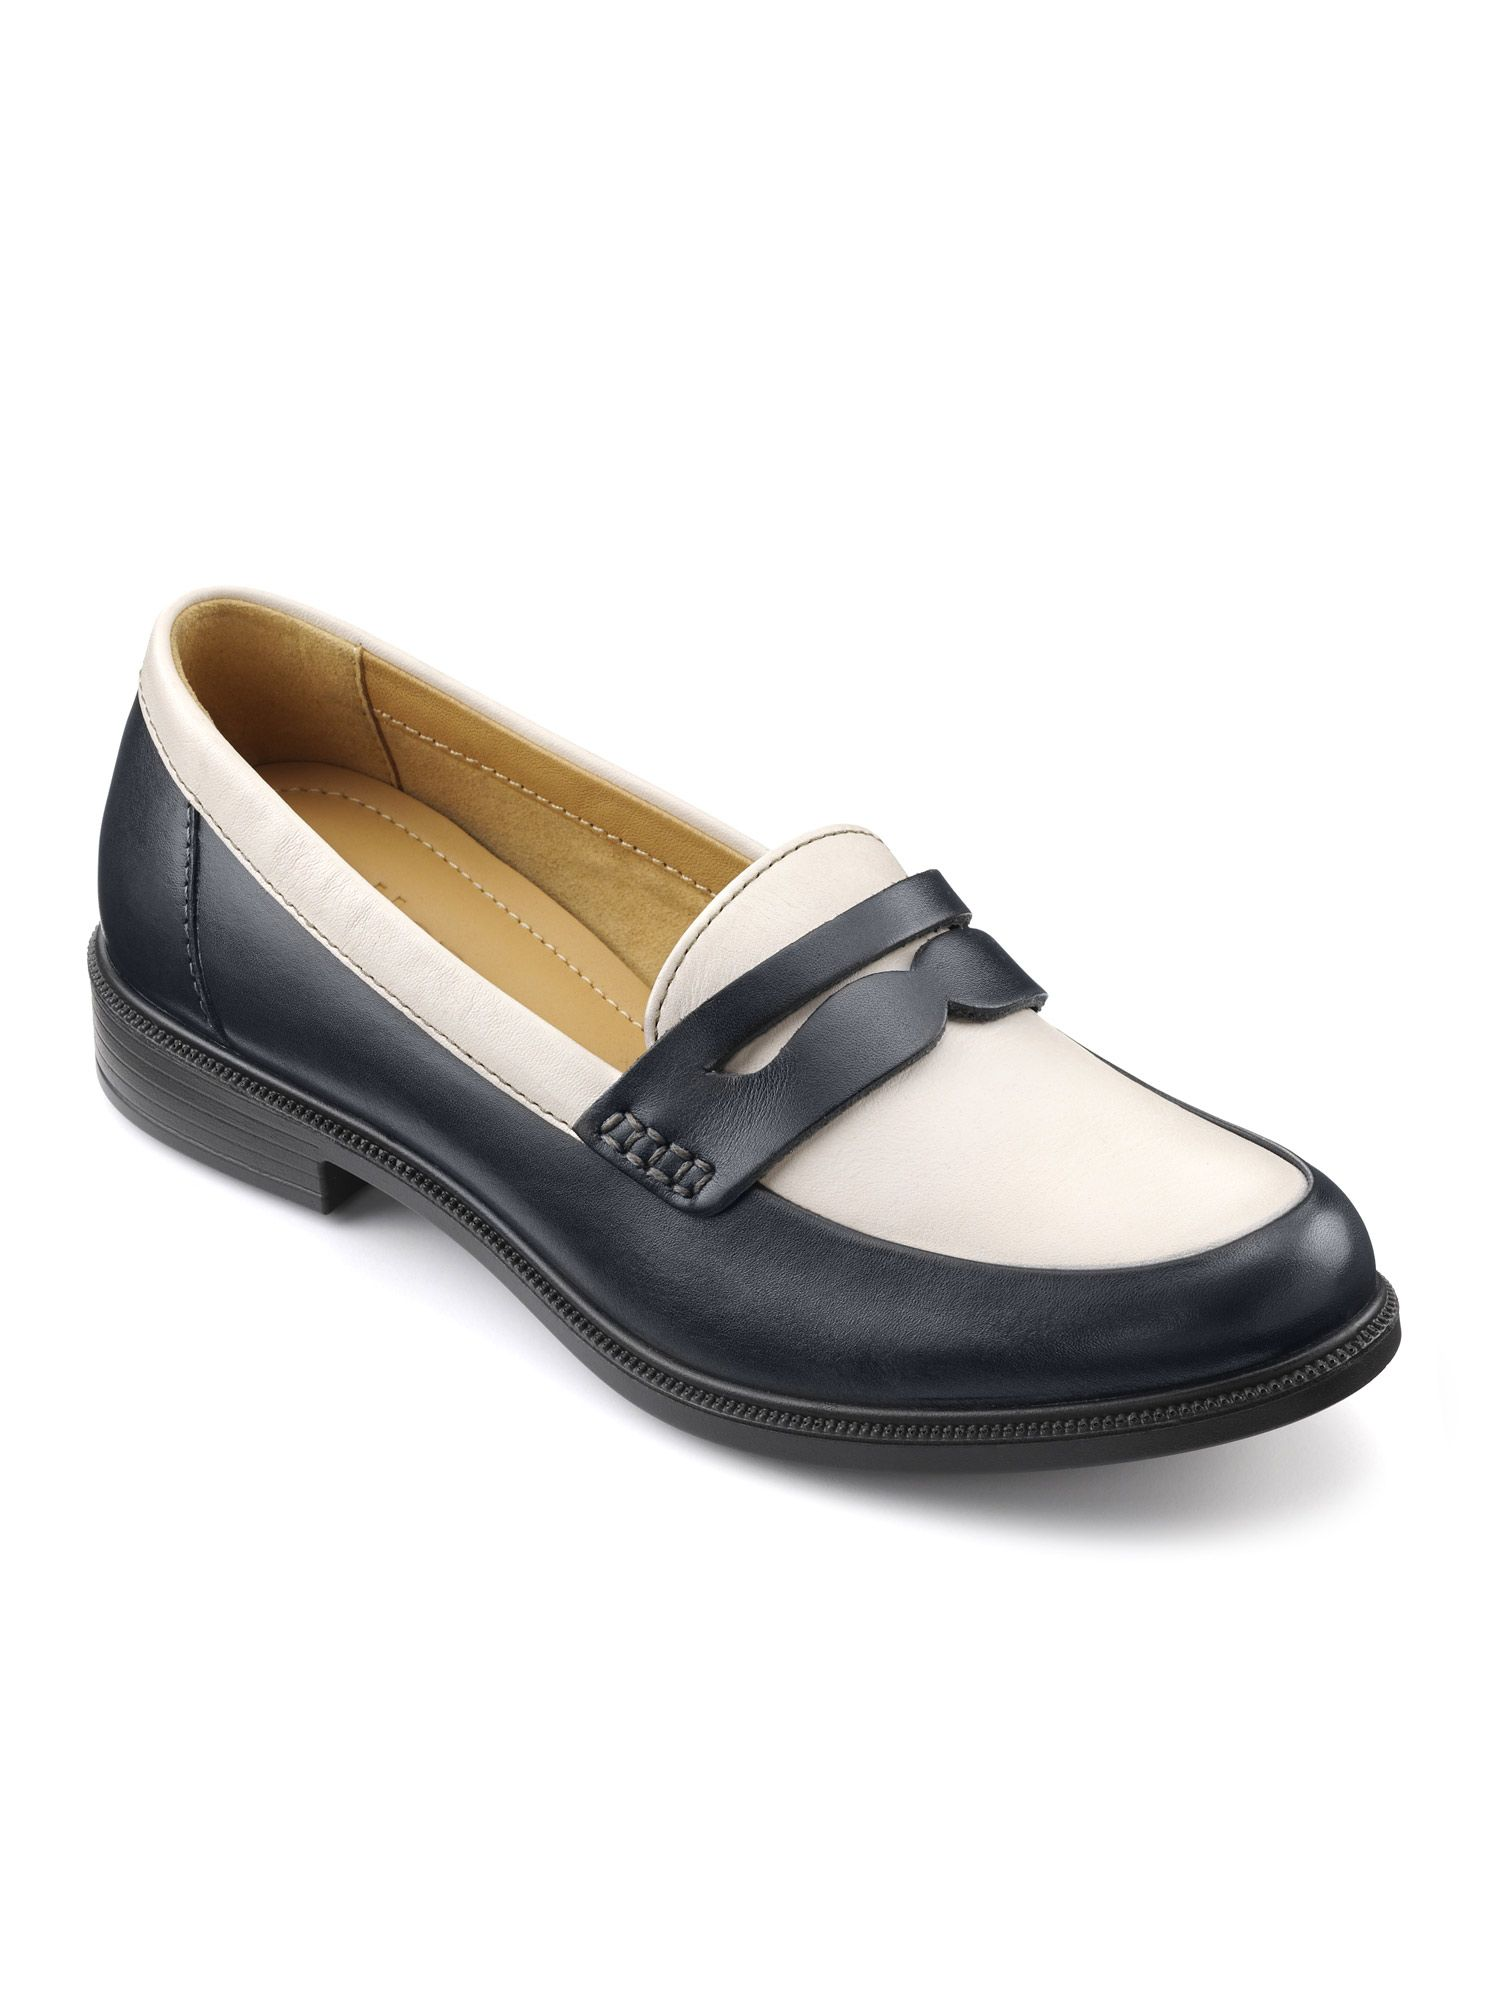 Hotter Dorset Hotter Ladies Smart Loafer Shoe, Blue